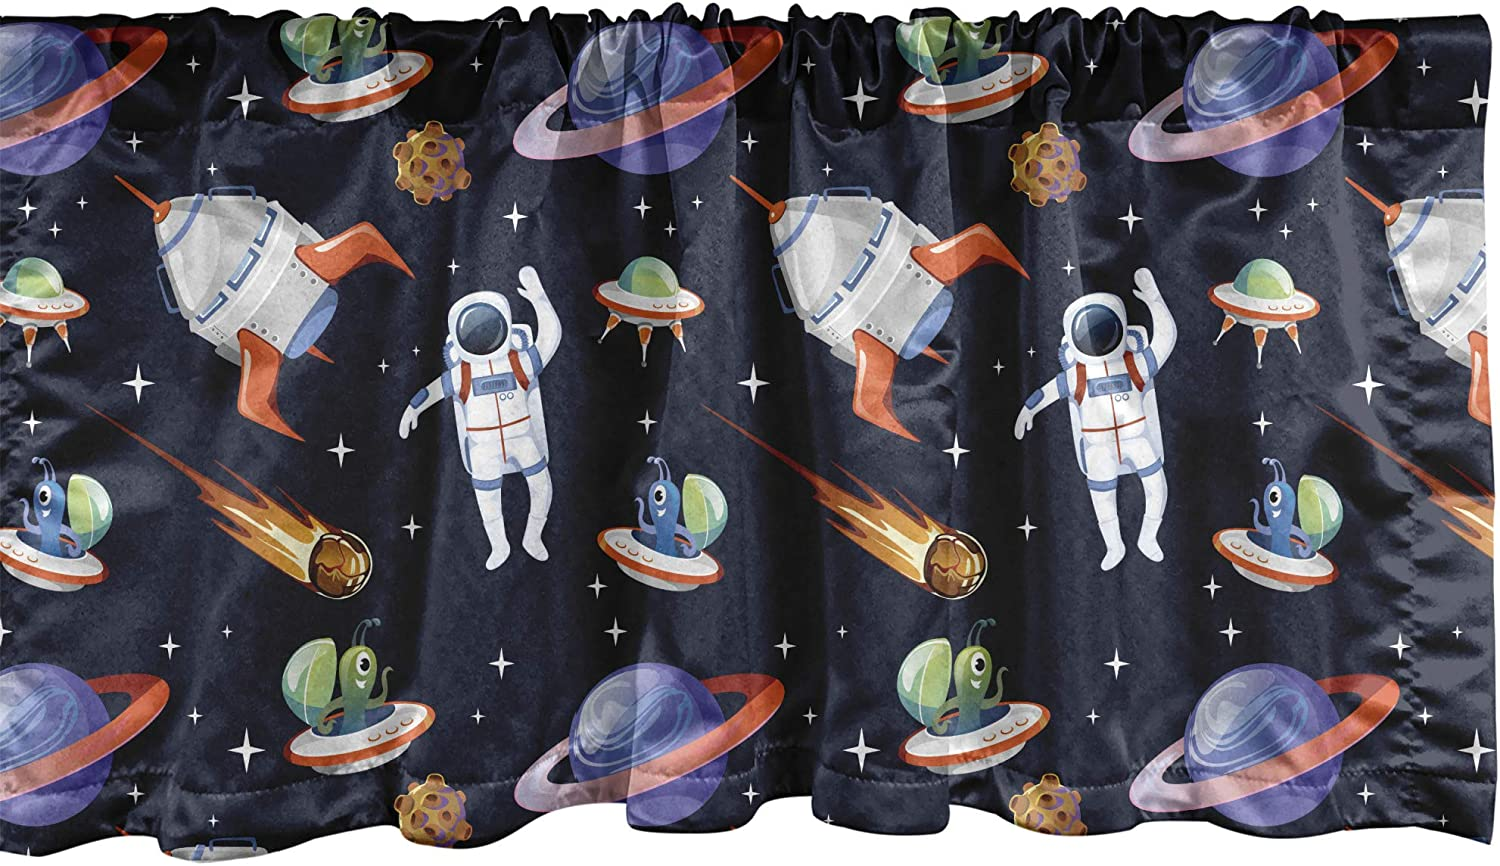 Ambesonne Alien Window Valance, Galaxy Asteroid Astronaut UFO Spaceship Outer Space Themed Pattern, Curtain Valance for Kitchen Bedroom Decor with Rod Pocket, 54